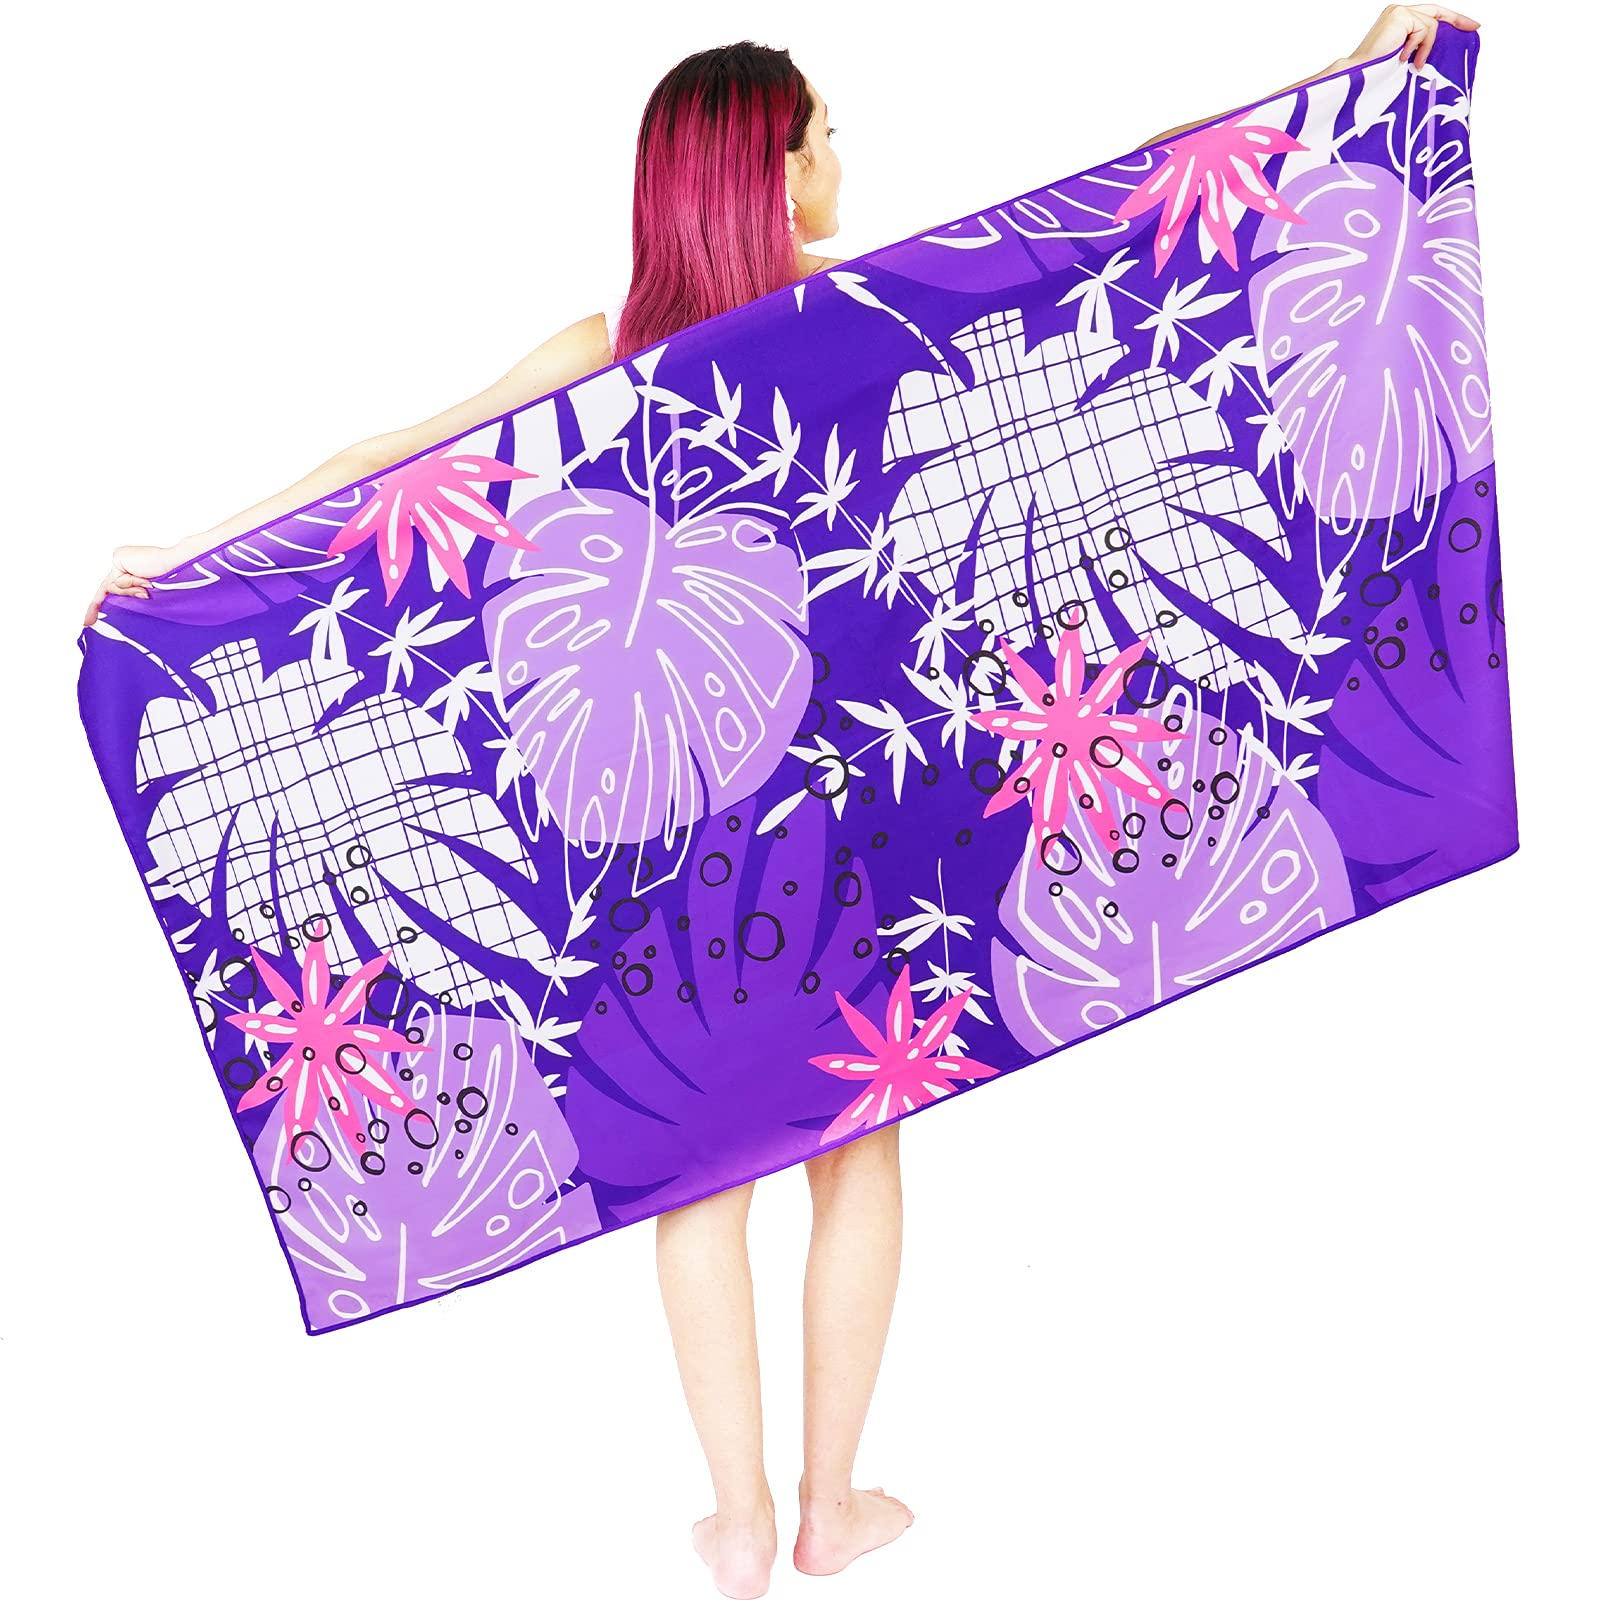 Oversized Beach Towel Microfiber Cotton Sand Free Large Super Absorbent Quick Dry